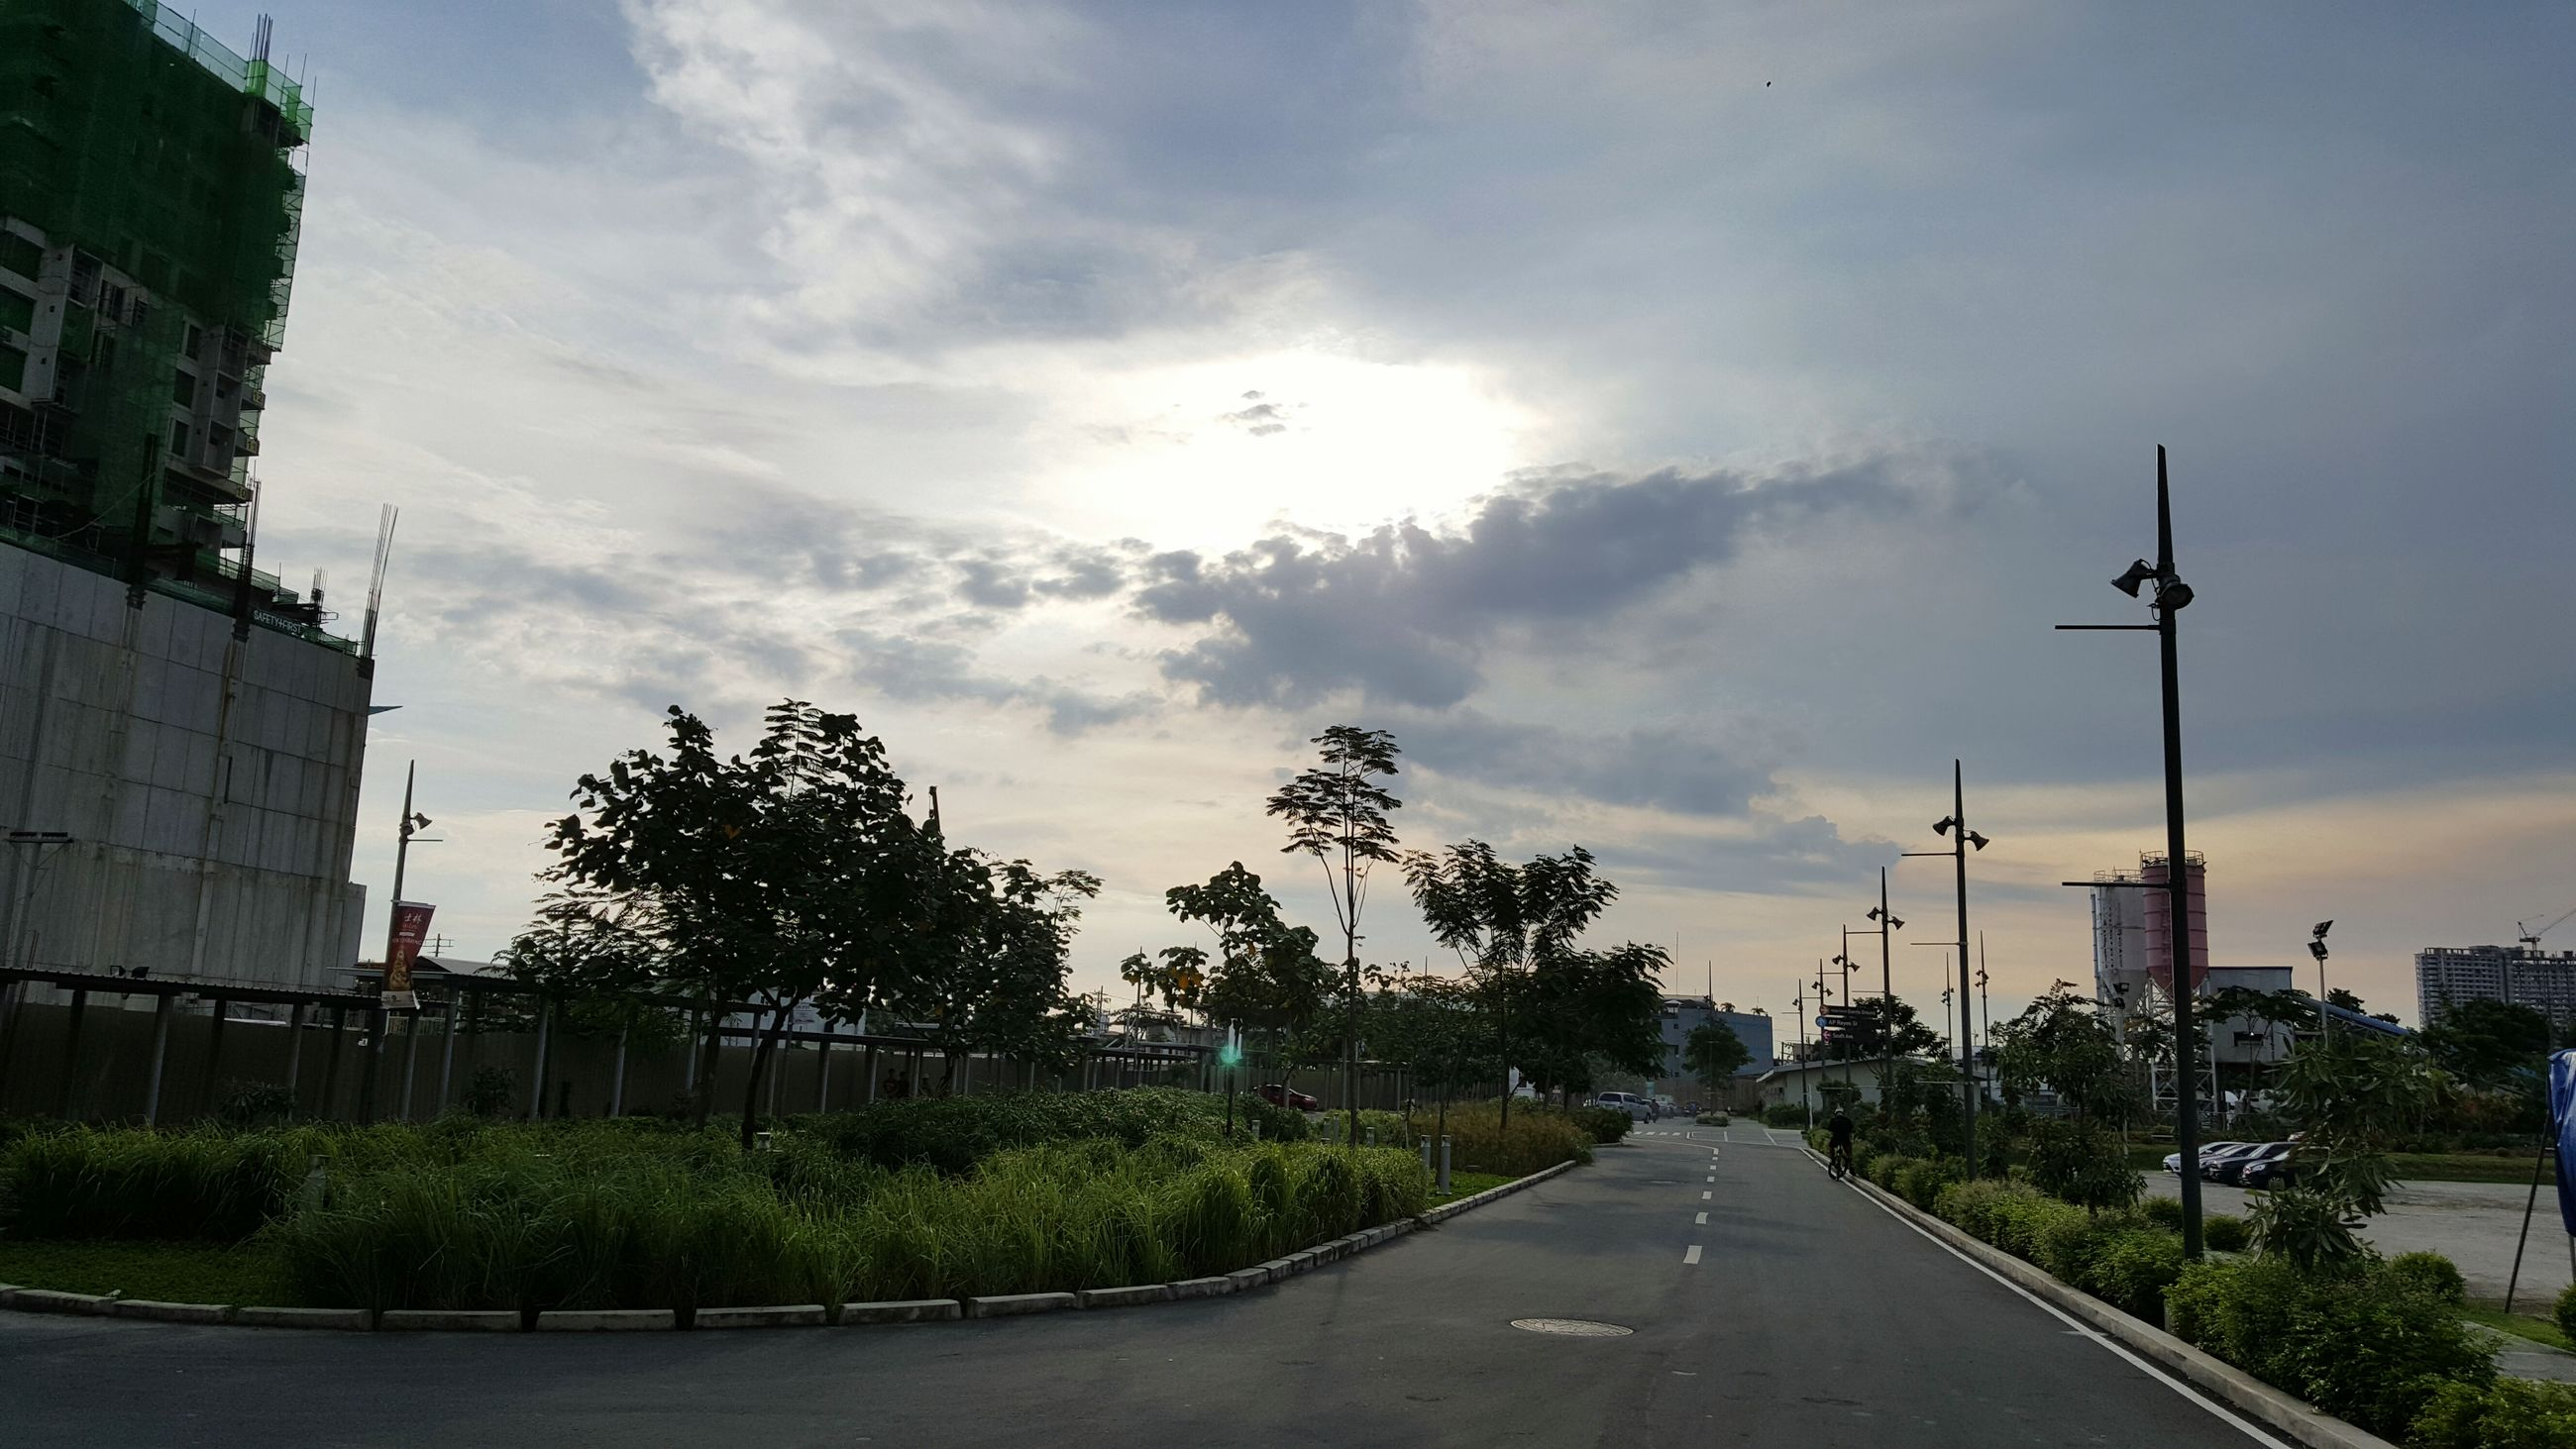 road, the way forward, cloud, empty, transportation, long, sky, tree, solitude, street, architecture, tower, surface level, building exterior, diminishing perspective, plant, outdoors, narrow, day, tall - high, vanishing point, remote, countryside, empty road, tranquility, tranquil scene, cloudy, tall